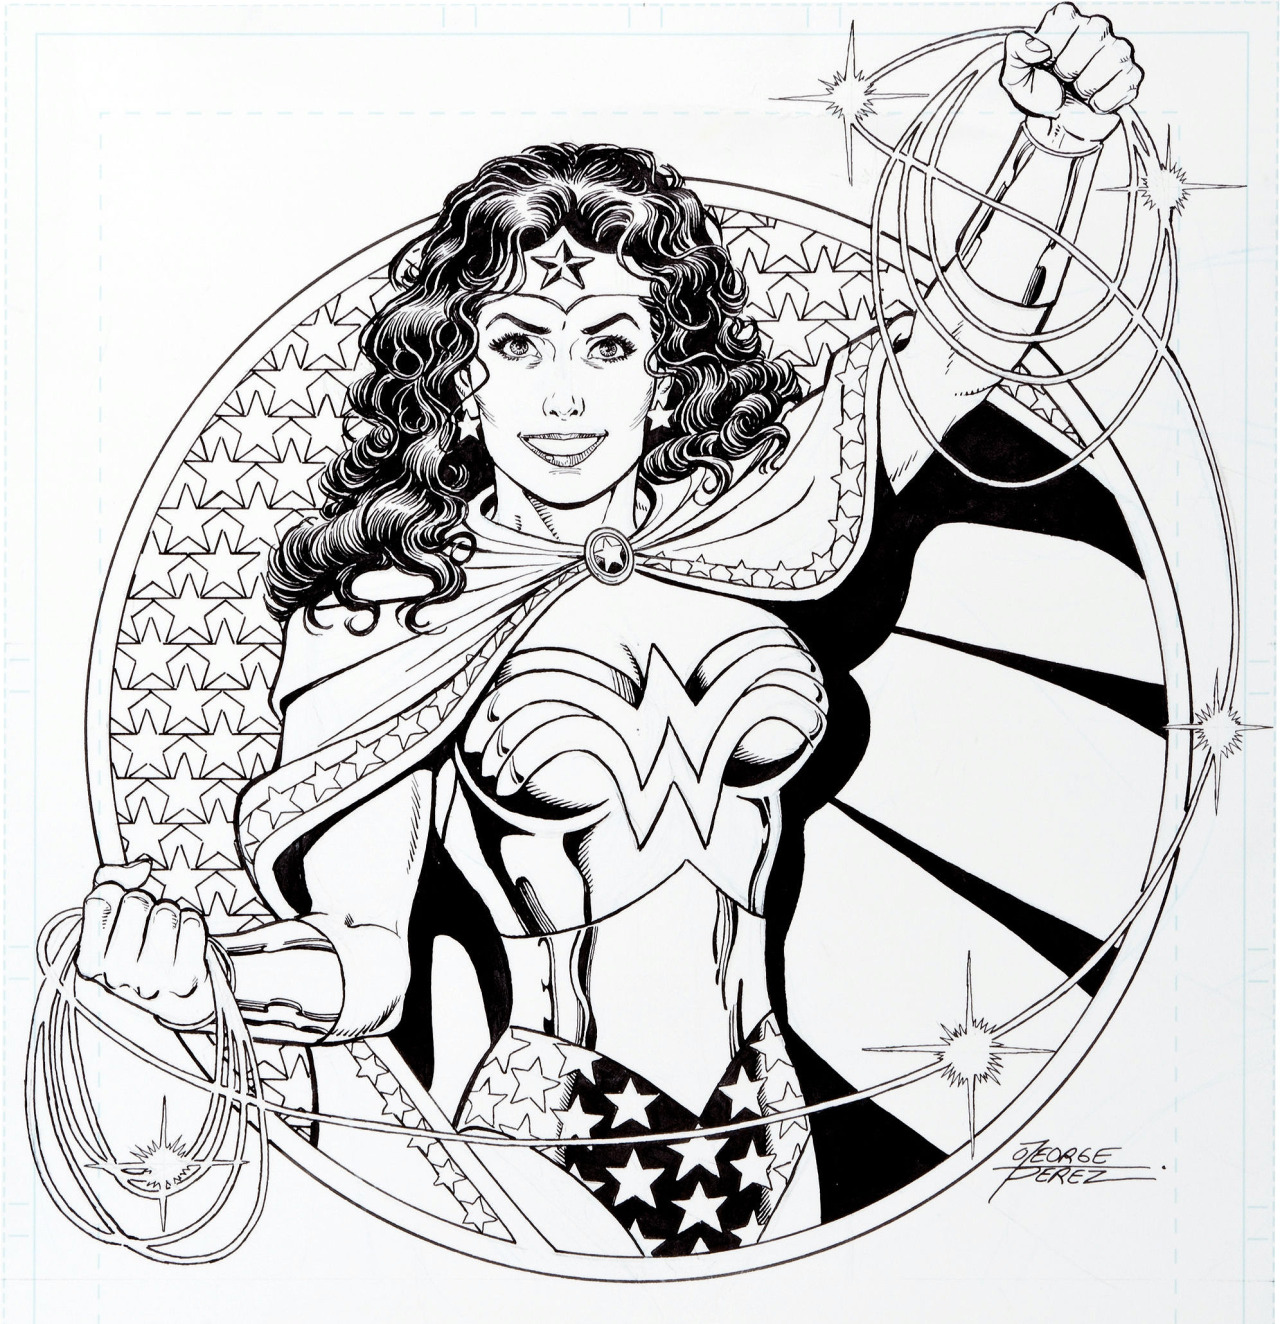 Illustration by George Perez, cover of the Overstreet Comic Book Price Guide #36, 2006